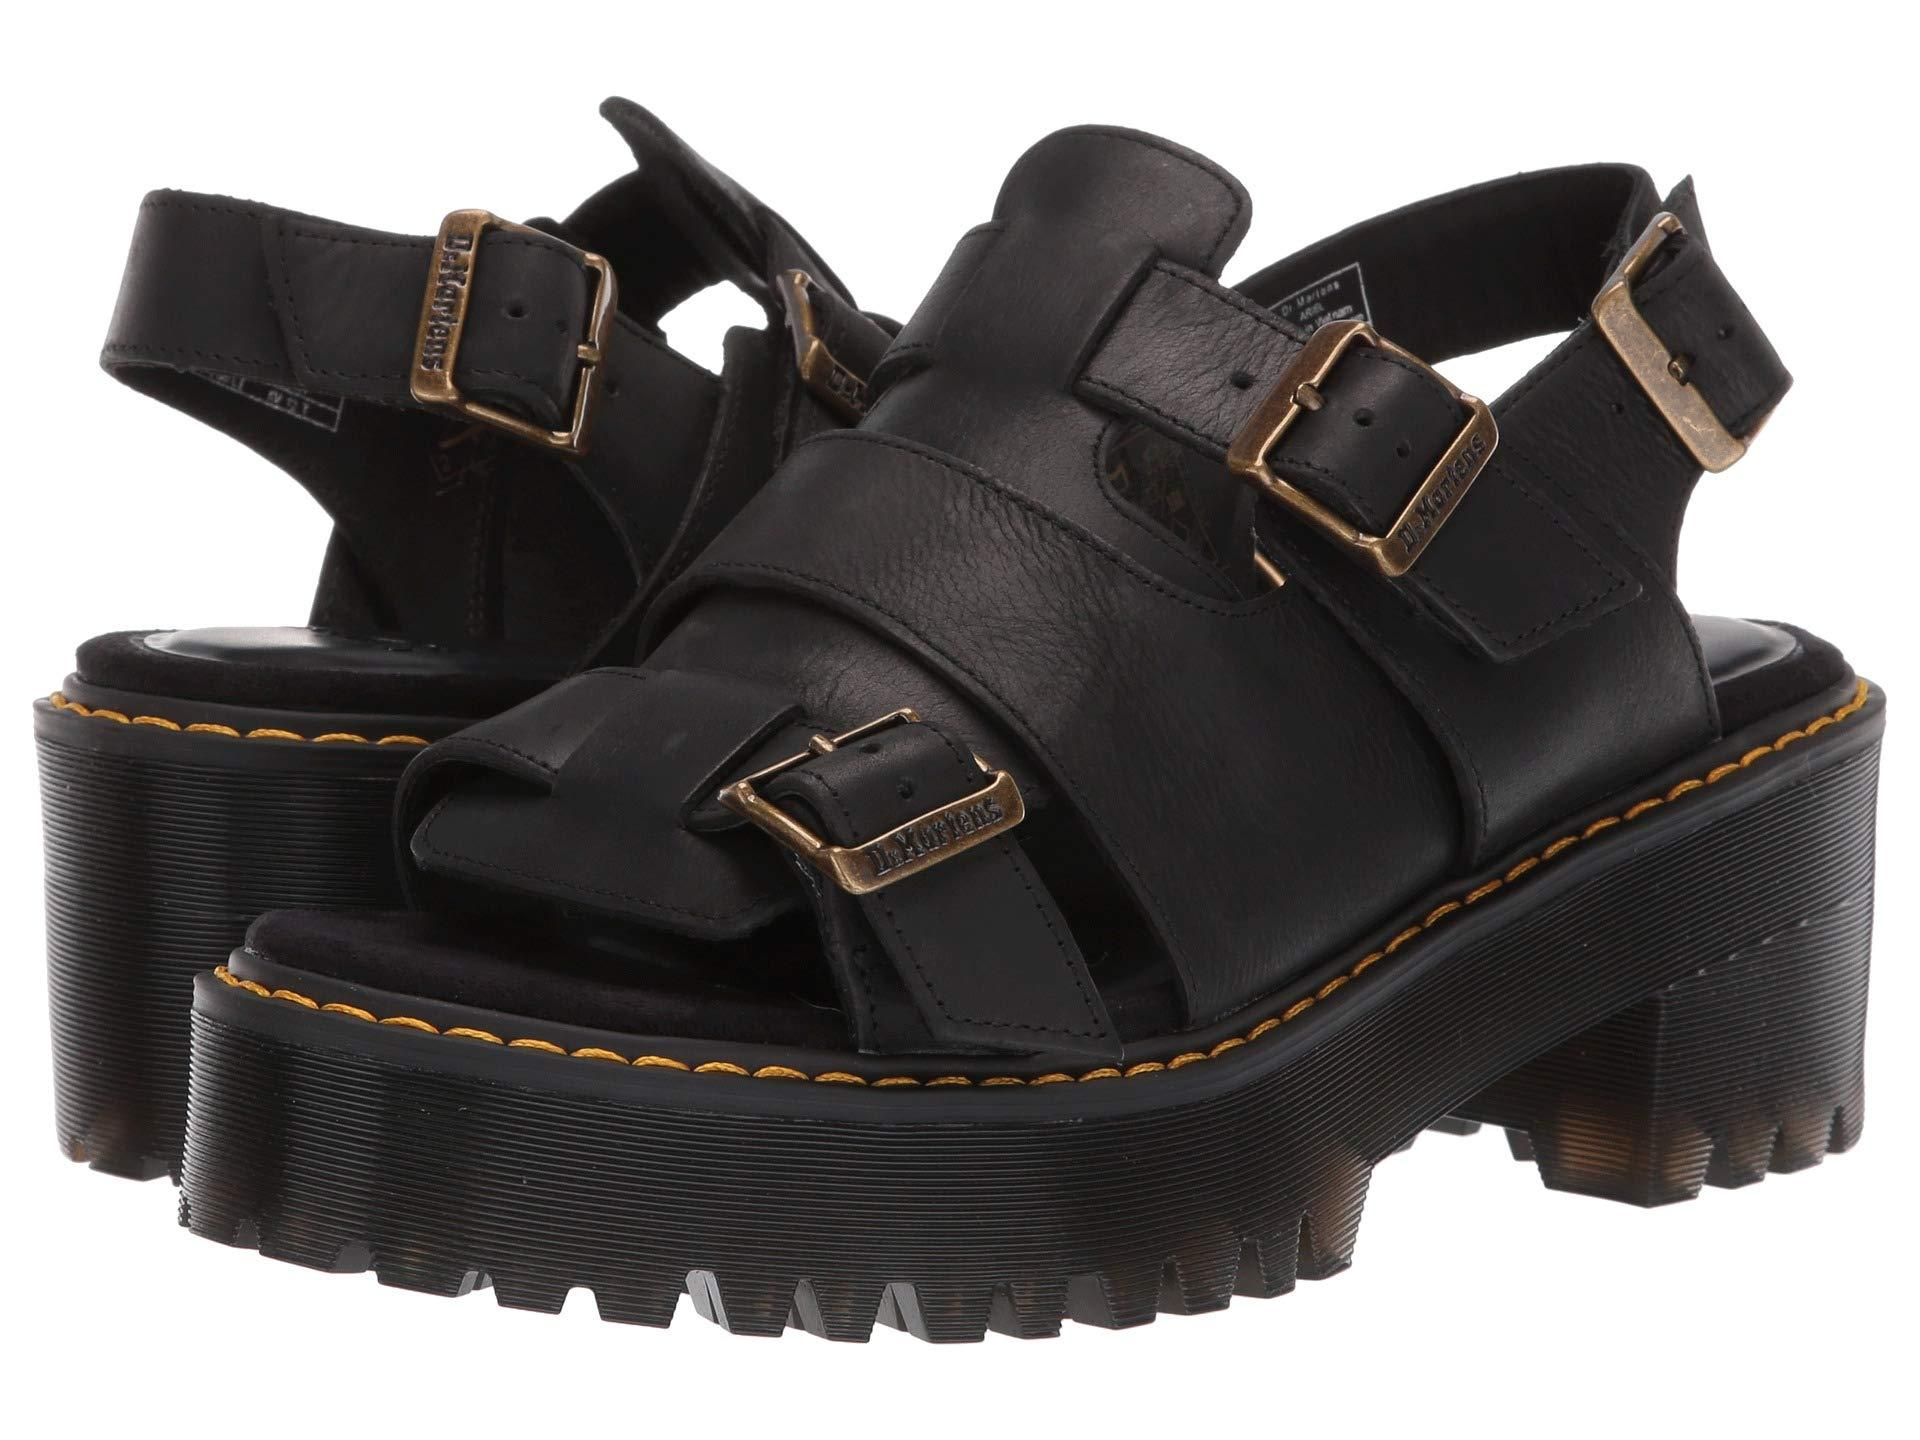 c604e8c7c09c Lyst - Dr. Martens Ariel Leaather Chunky Heeled Sandals in Black ...